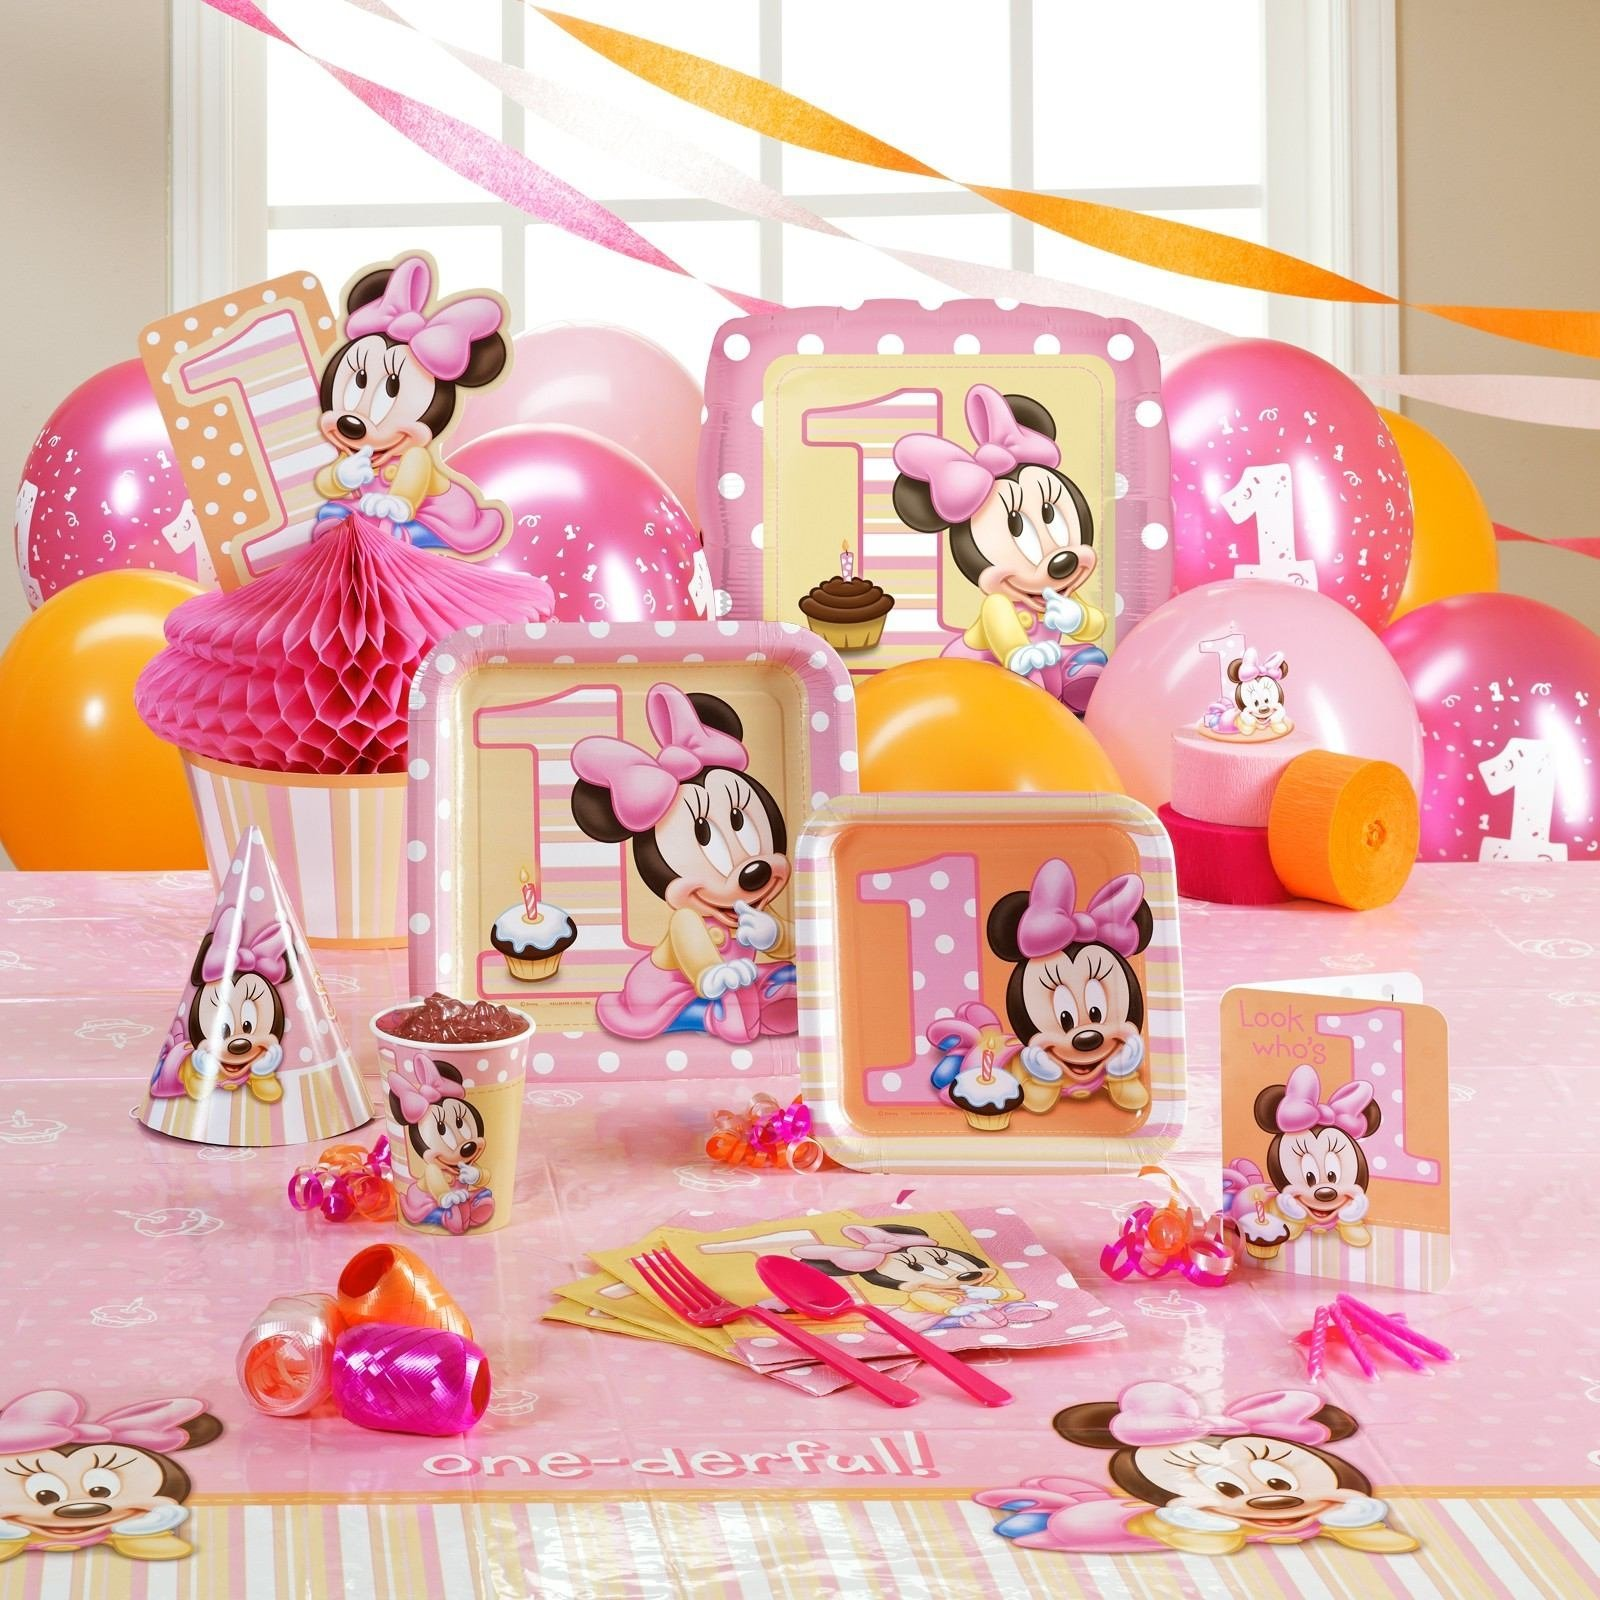 10 Ideal 1 Year Old Birthday Picture Ideas girls birthday party themes best decorations for 1 year old boy 1 2020